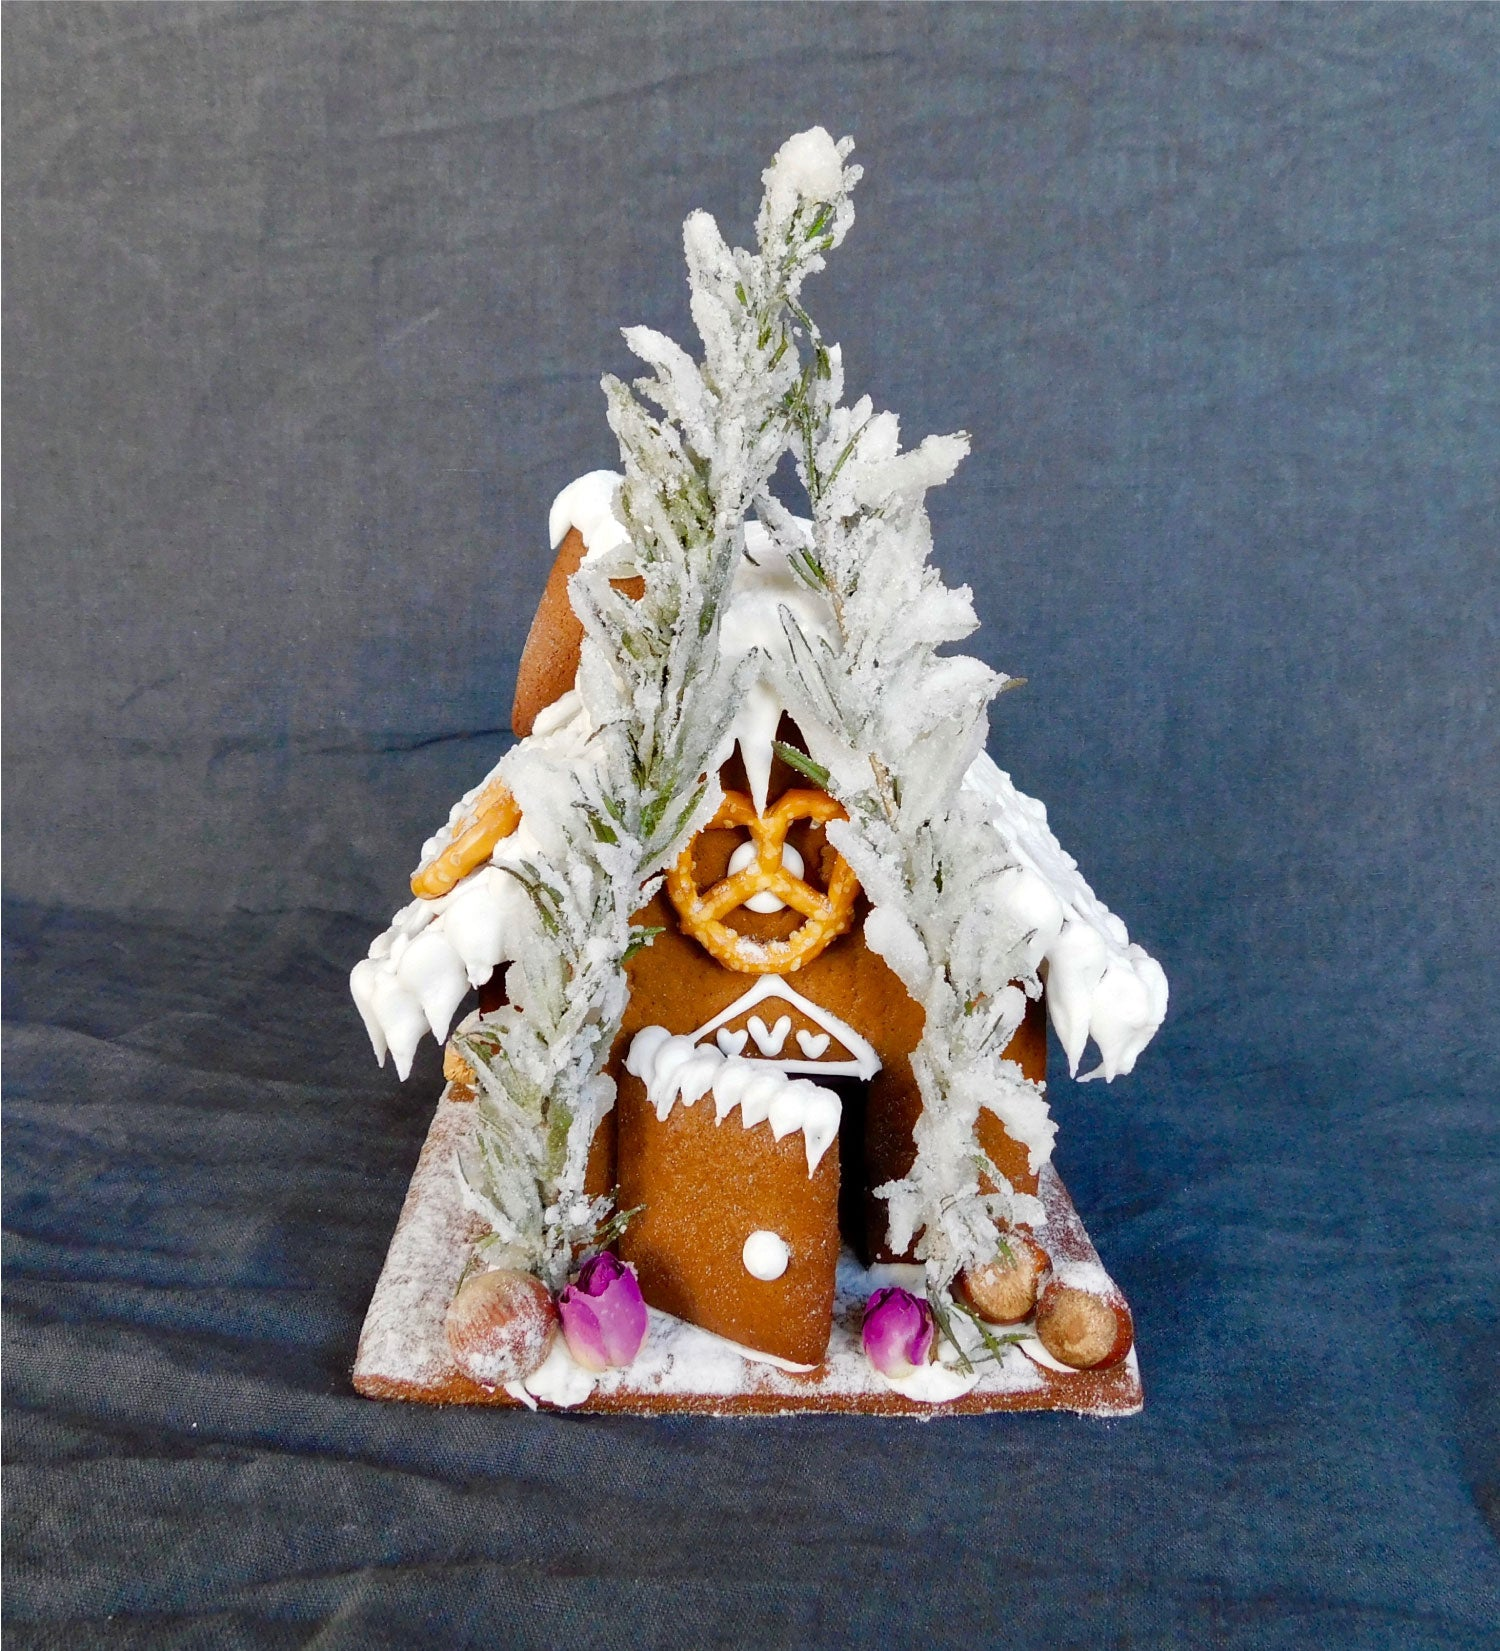 Austro Bakery Gingerbread House Large